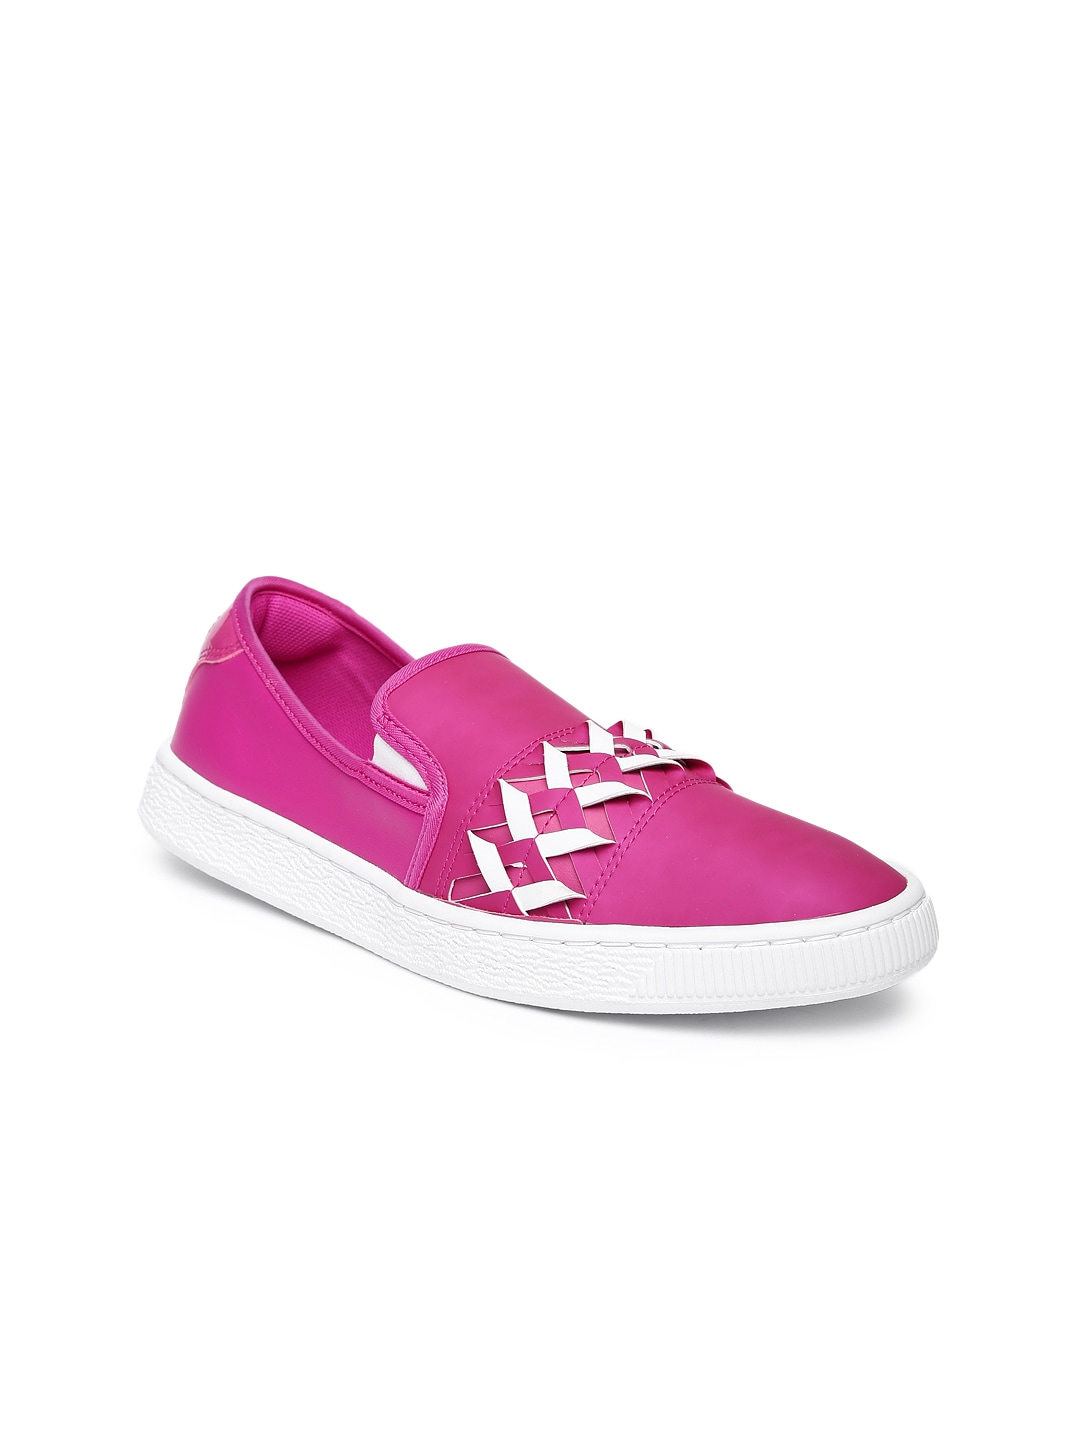 best authentic eddd1 0ae11 ... sweden women basket cut out slip ons. image. adidas originals 02d82  868b7